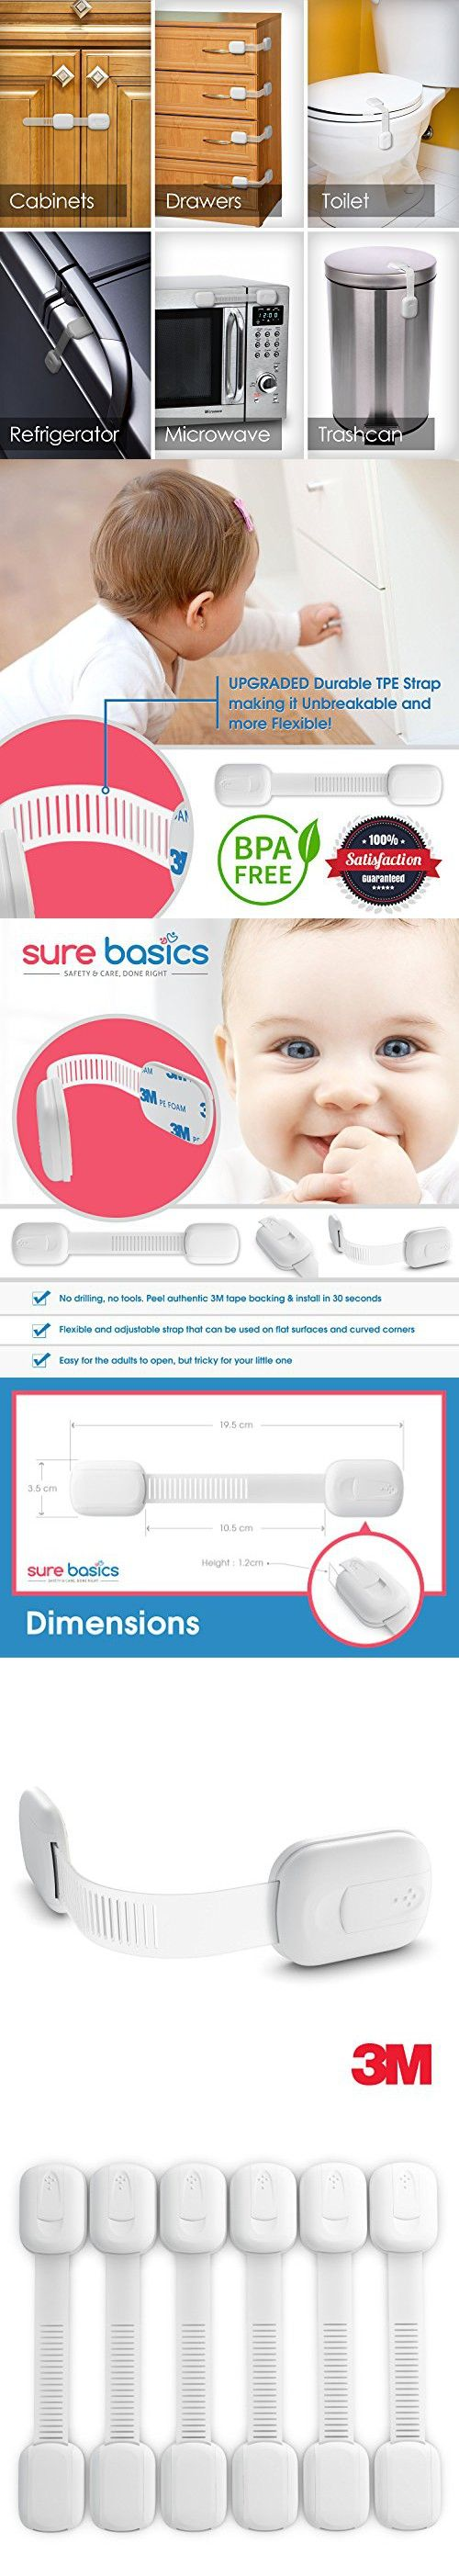 Child Safety For Cabinets Adjustable Child Safety Locks To Baby Proof Cabinets Drawer